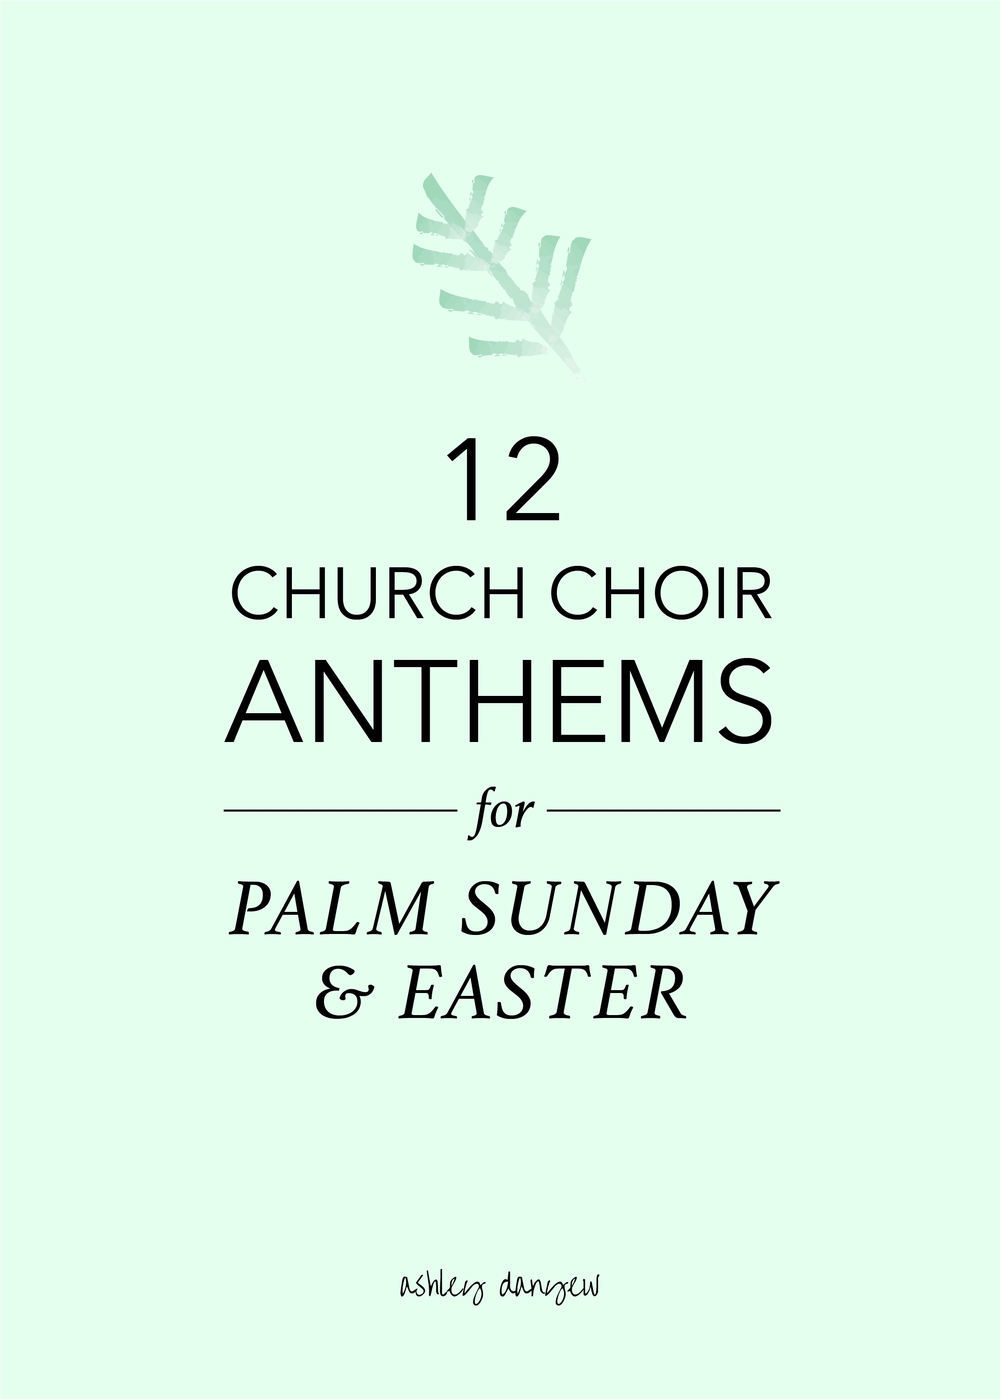 12 Church Choir Anthems for Palm Sunday and Easter-01.png